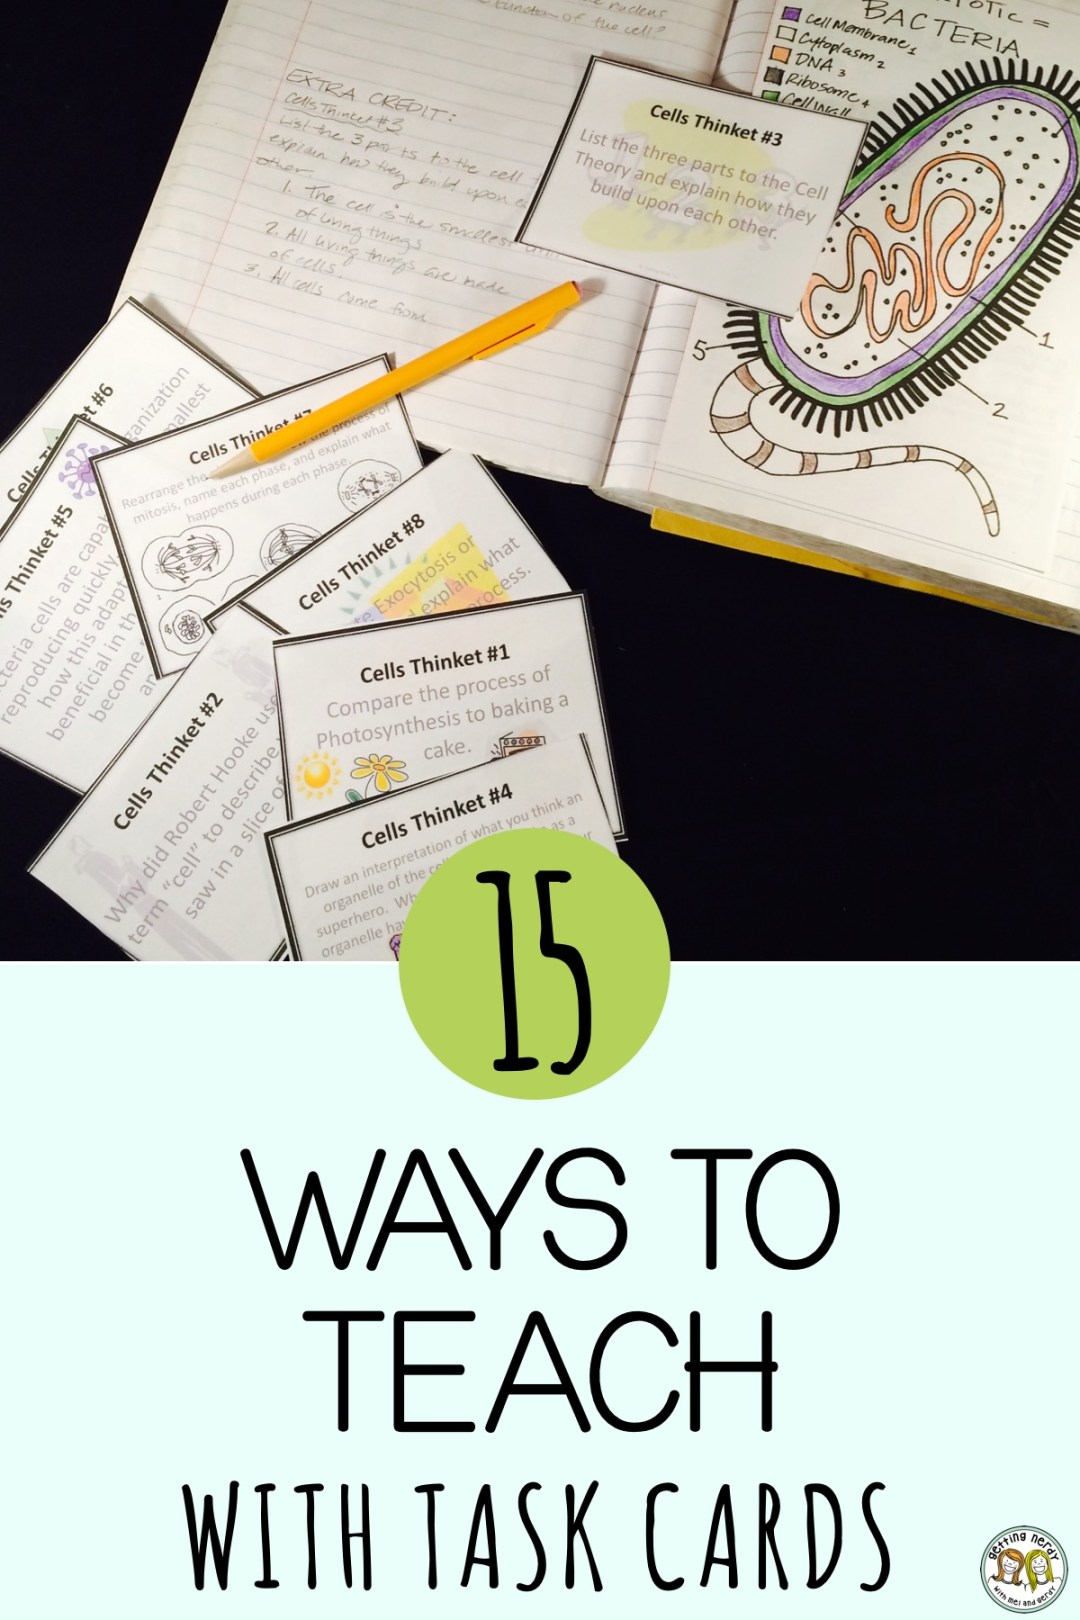 Use these 15 tips for incorporating task cards into your teaching #gettingnerdyscience #taskcards